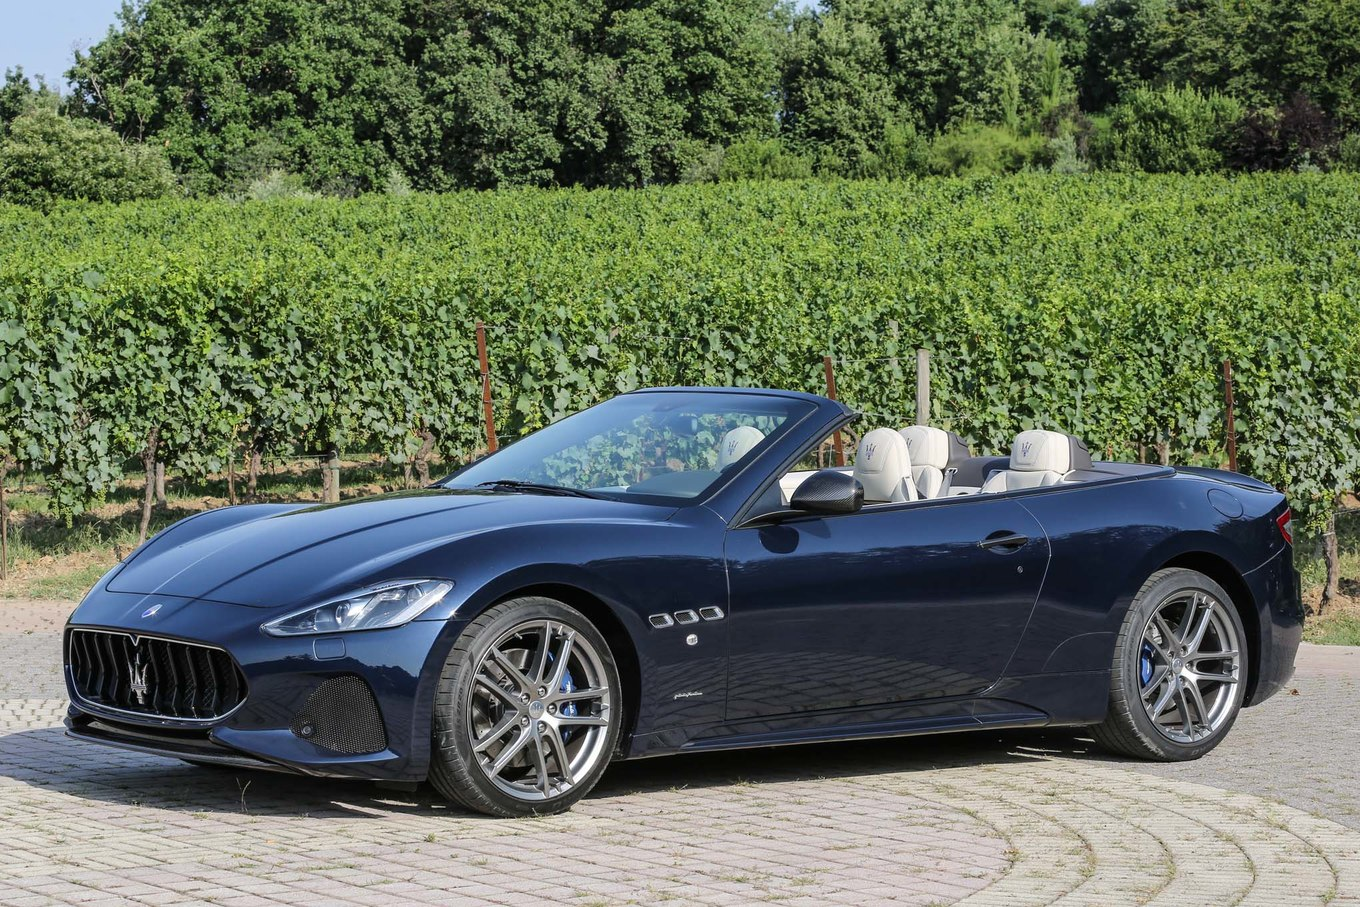 Maserati coupe photo - 4